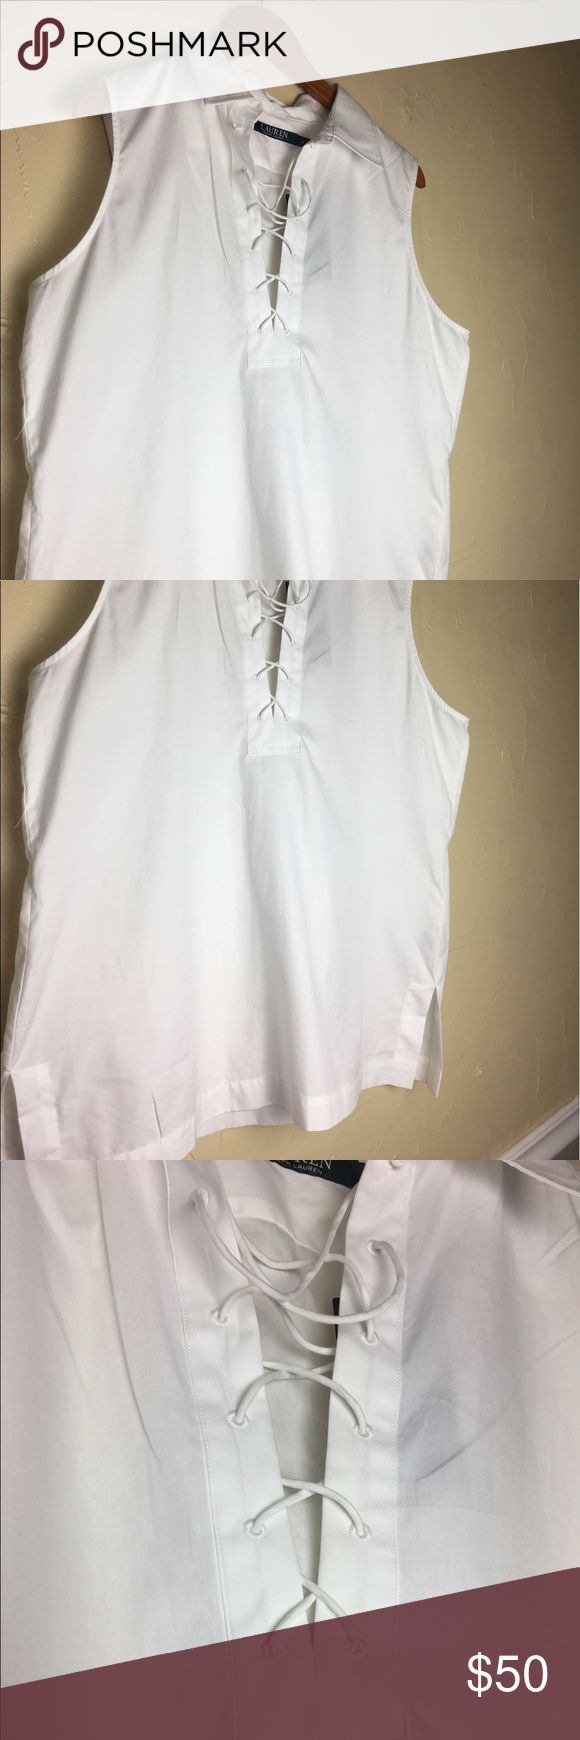 ❌SALE❌Lauren Ralph Lauren XL white crossing shirt 100% cotton lauren Ralph Lauren XL white blouse with beautiful detail in front area Lauren Ralph Lauren Tops Blouses